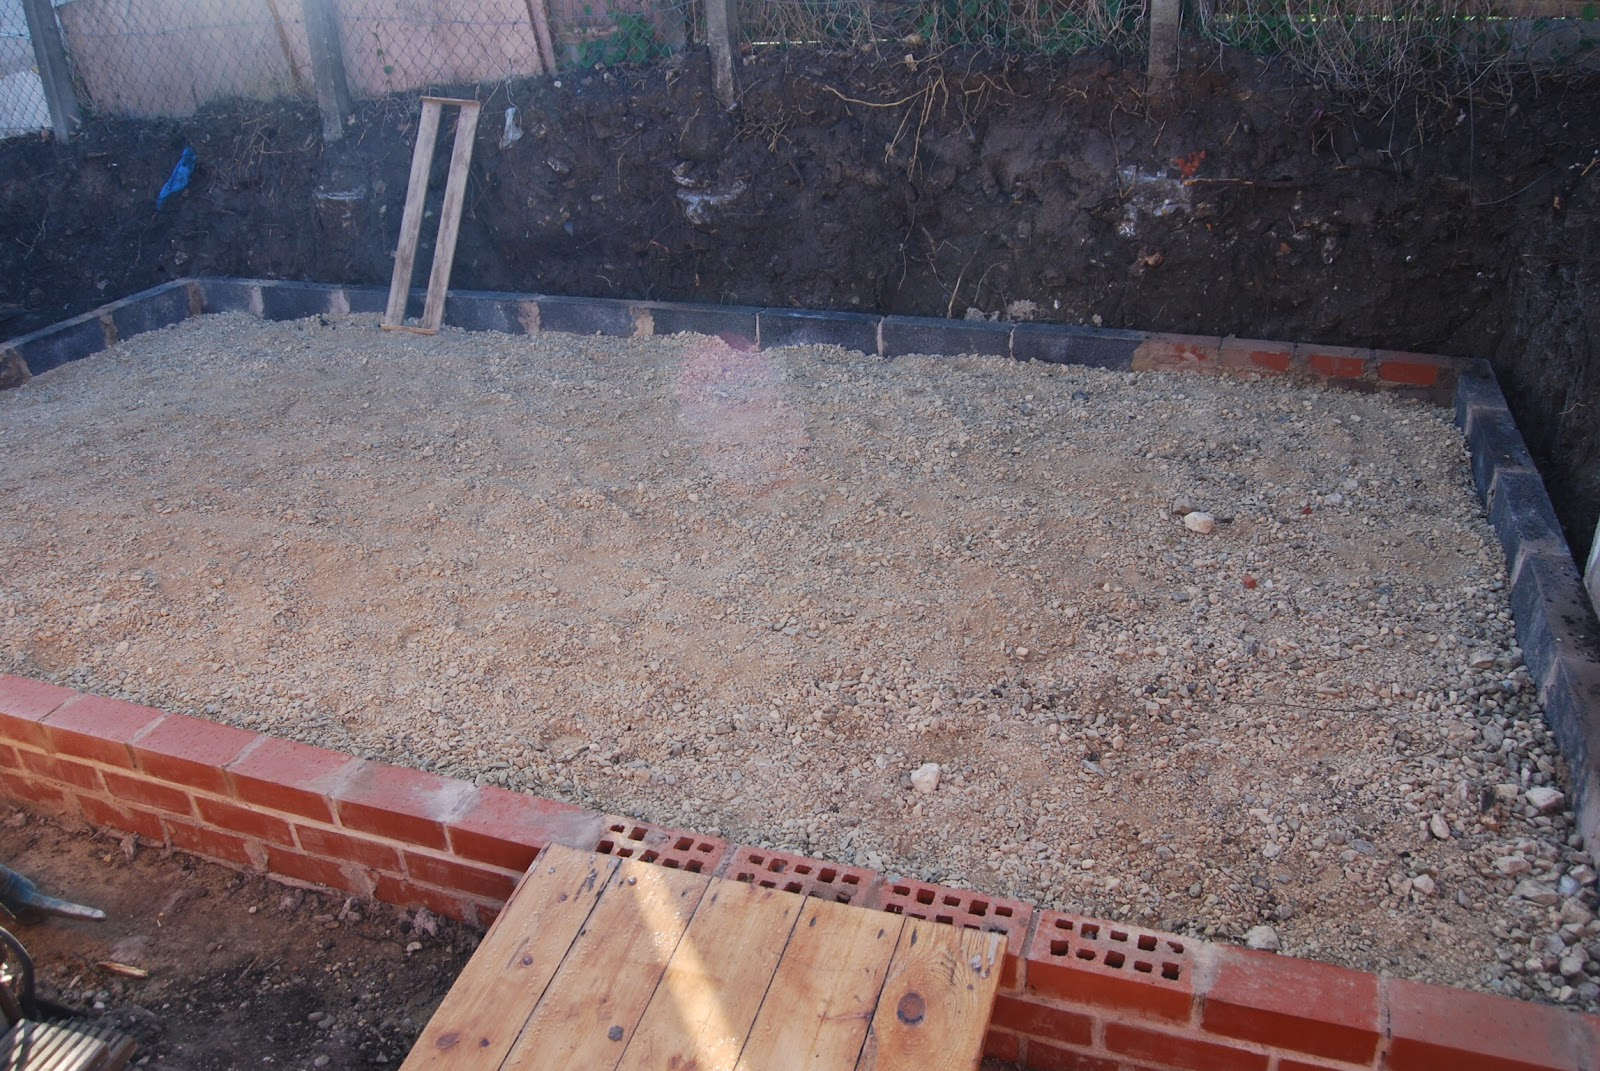 New block shed self build part 3 floor block laying brick i last shared the stone being whacked down ready for concreting layed the bricks up to damp proof course which would act as shuttering for levelling solutioingenieria Image collections